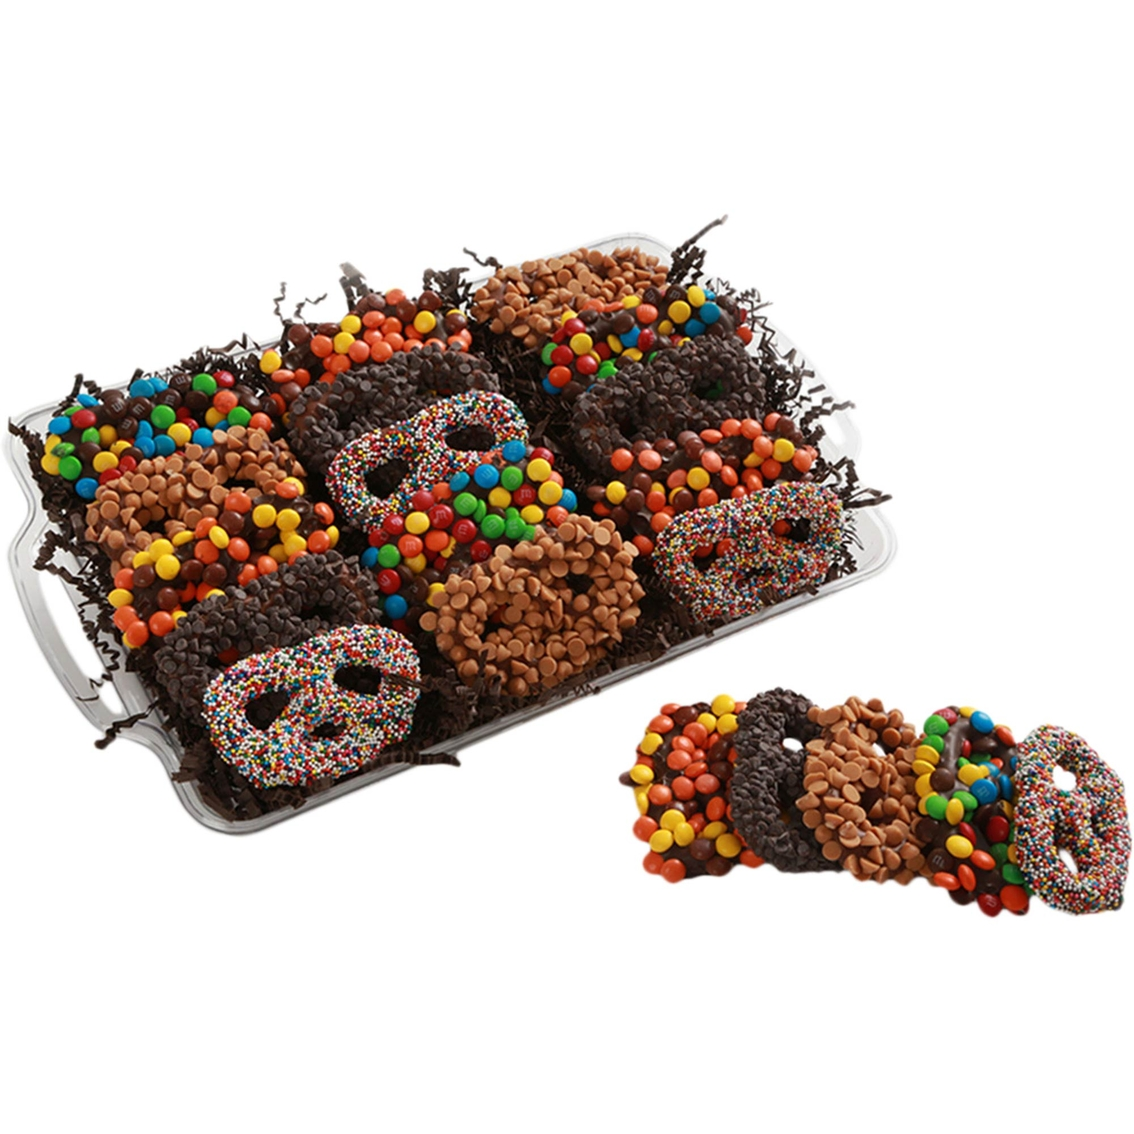 Chocolate Works Assorted Chocolate Covered Pretzels, 15 Ct ...